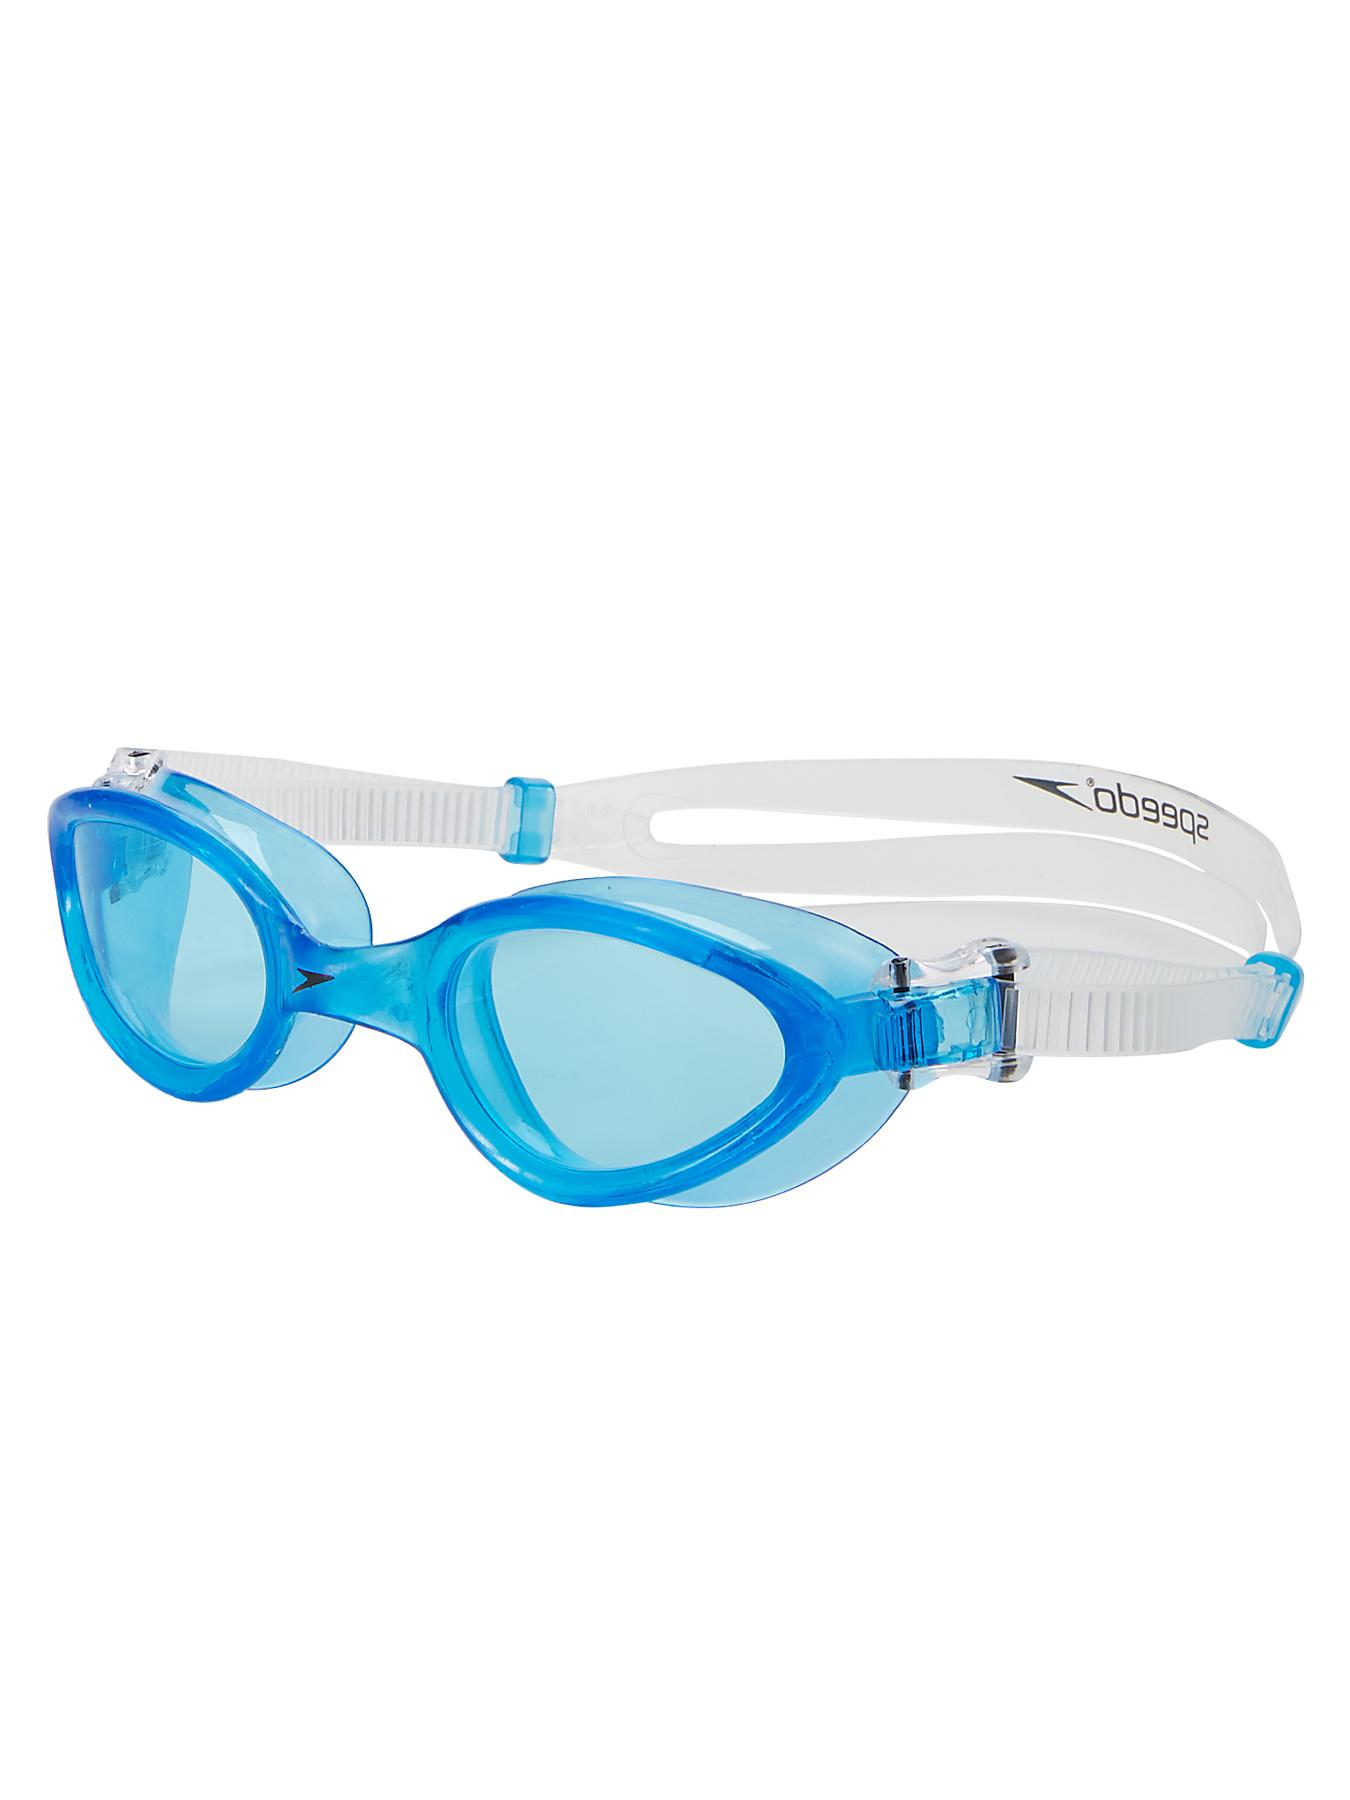 Speedo Futura One Goggles - Blue, Blue